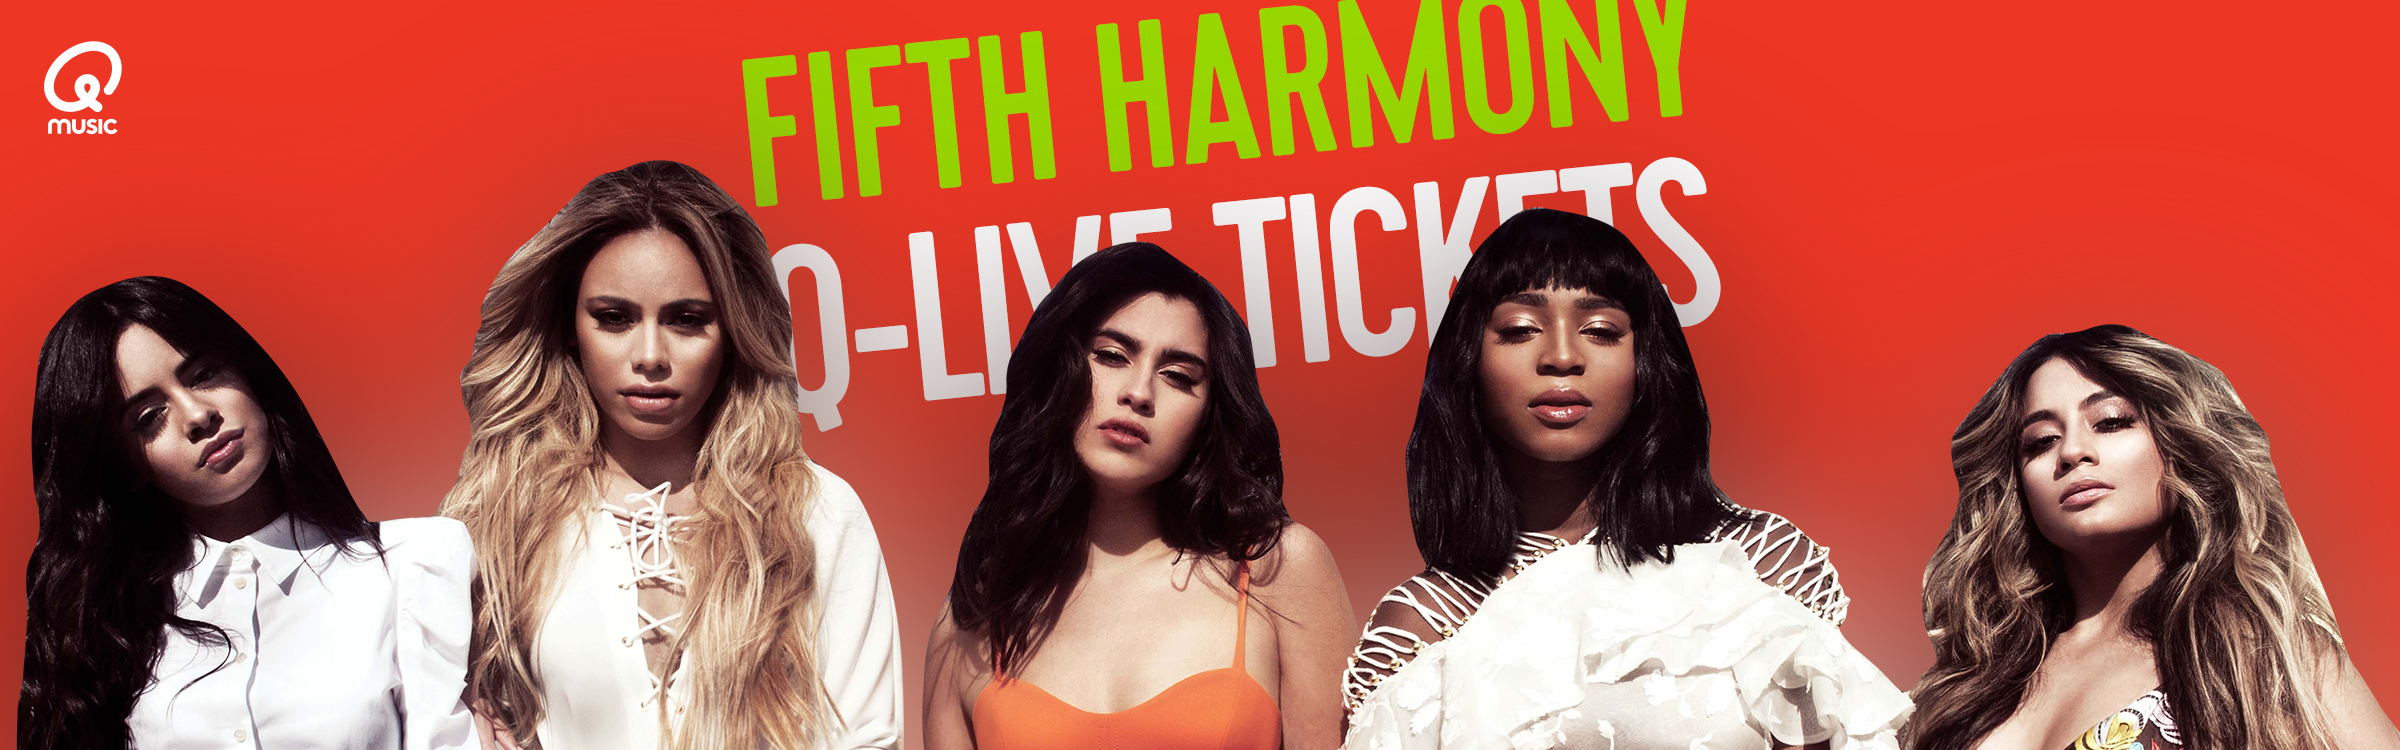 Qmusic actionheader fifthharmony v1